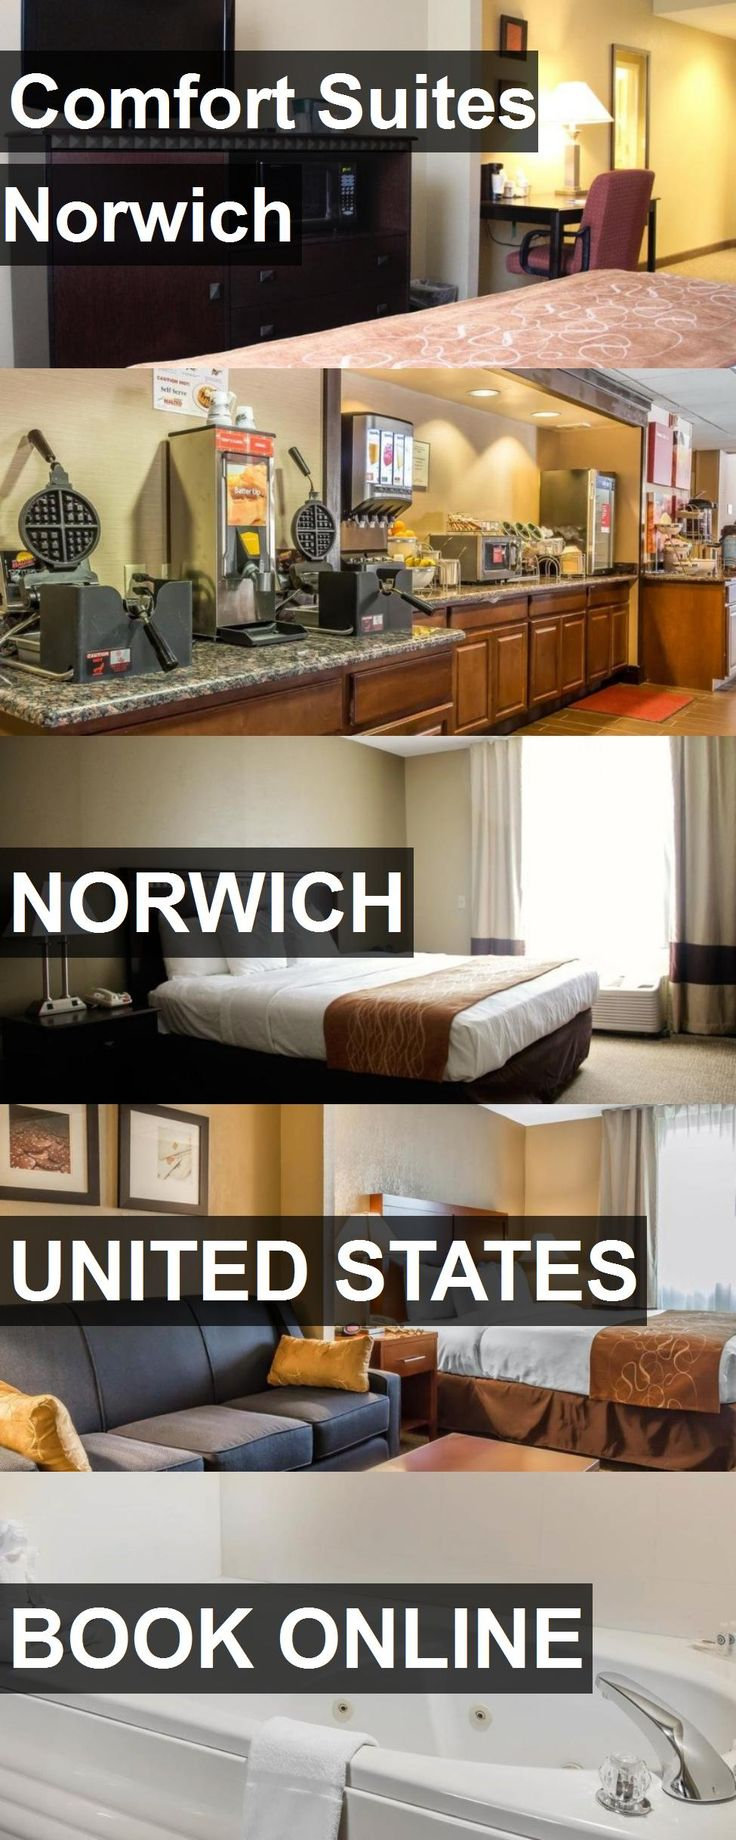 Hotel Comfort Suites Norwich in Norwich, United States. For more information, photos, reviews and best prices please follow the link. #UnitedStates #Norwich #ComfortSuitesNorwich #hotel #travel #vacation